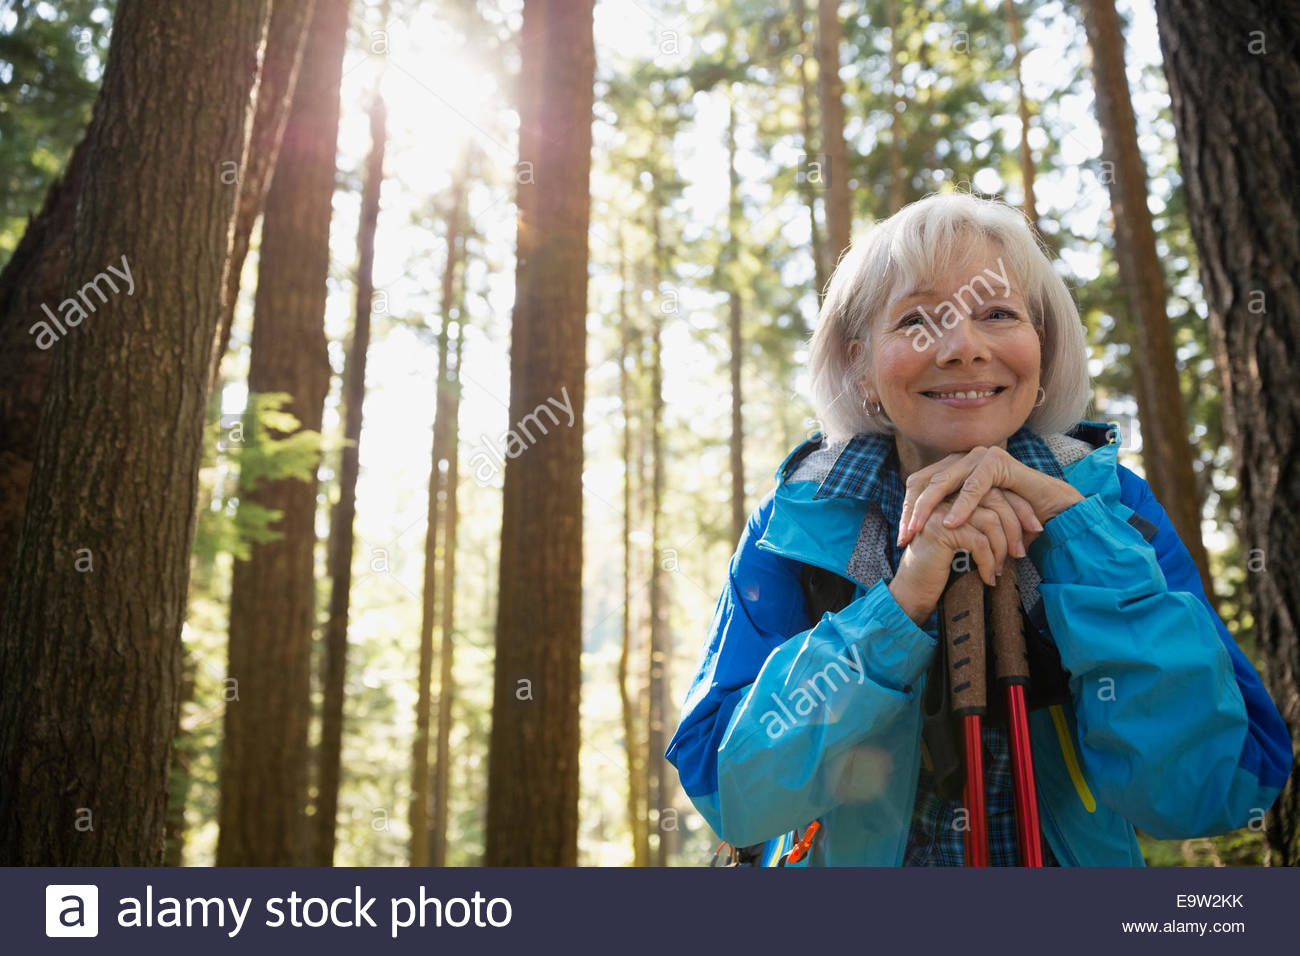 Portrait of smiling senior woman hiking in woods Photo Stock